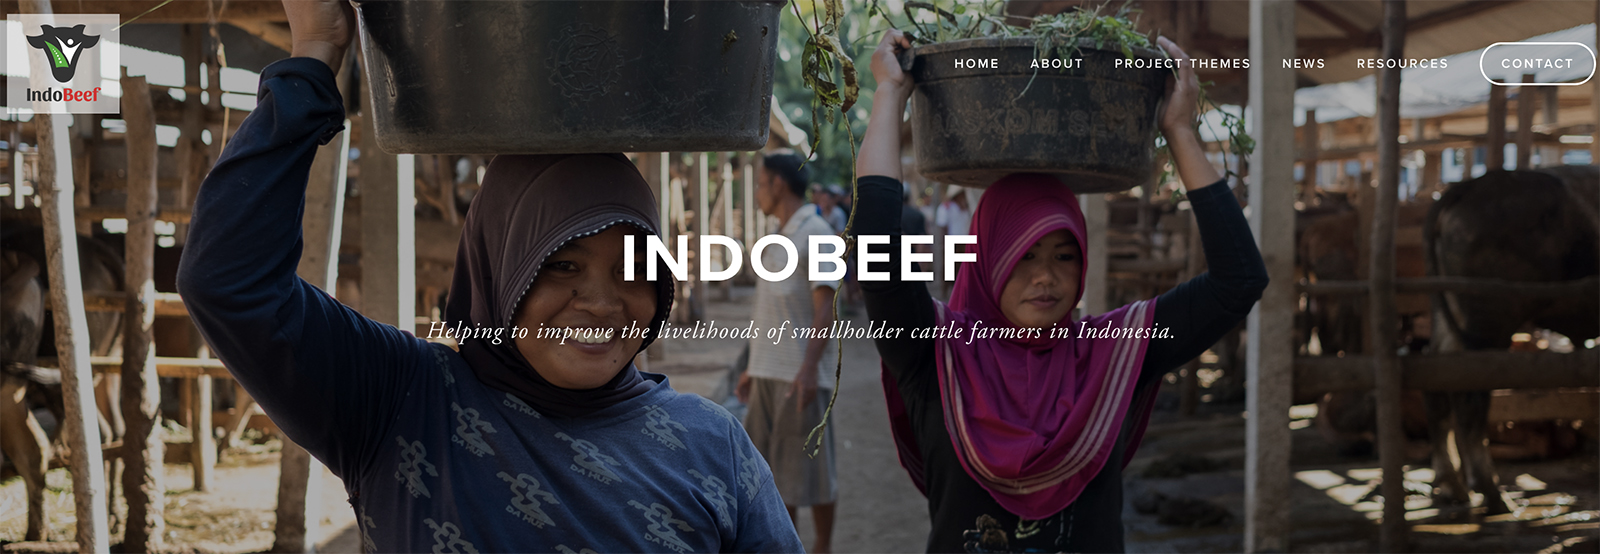 IndoBeef website.jpg